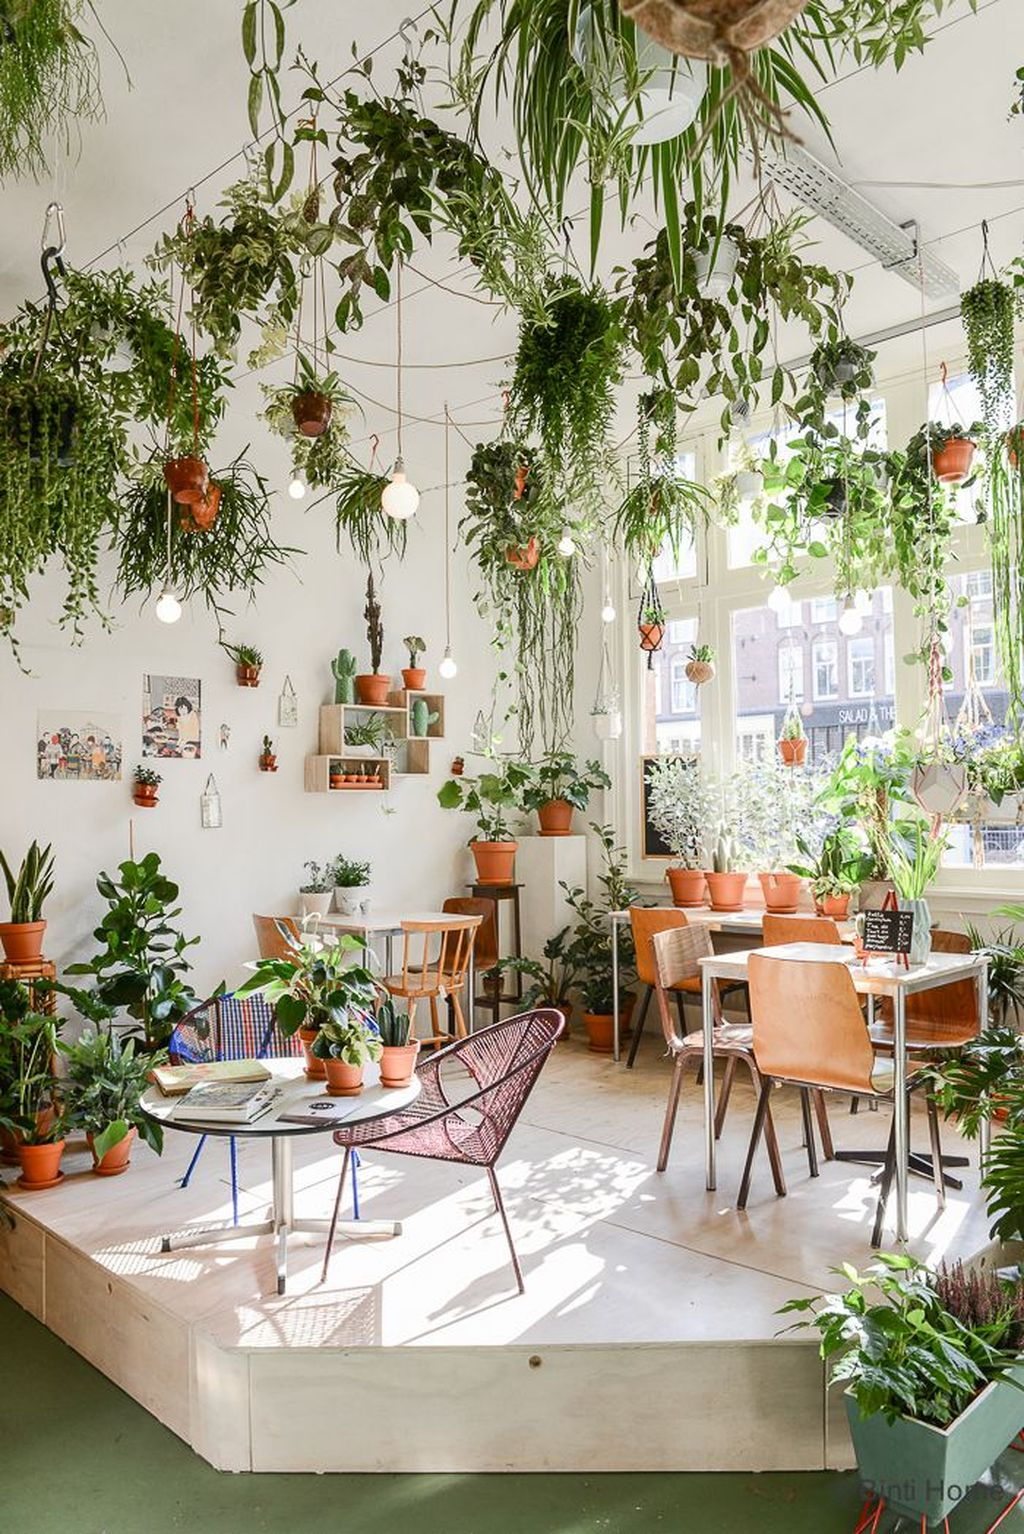 Favorite Home Patio Design Ideas With Best Hanging Plants 24